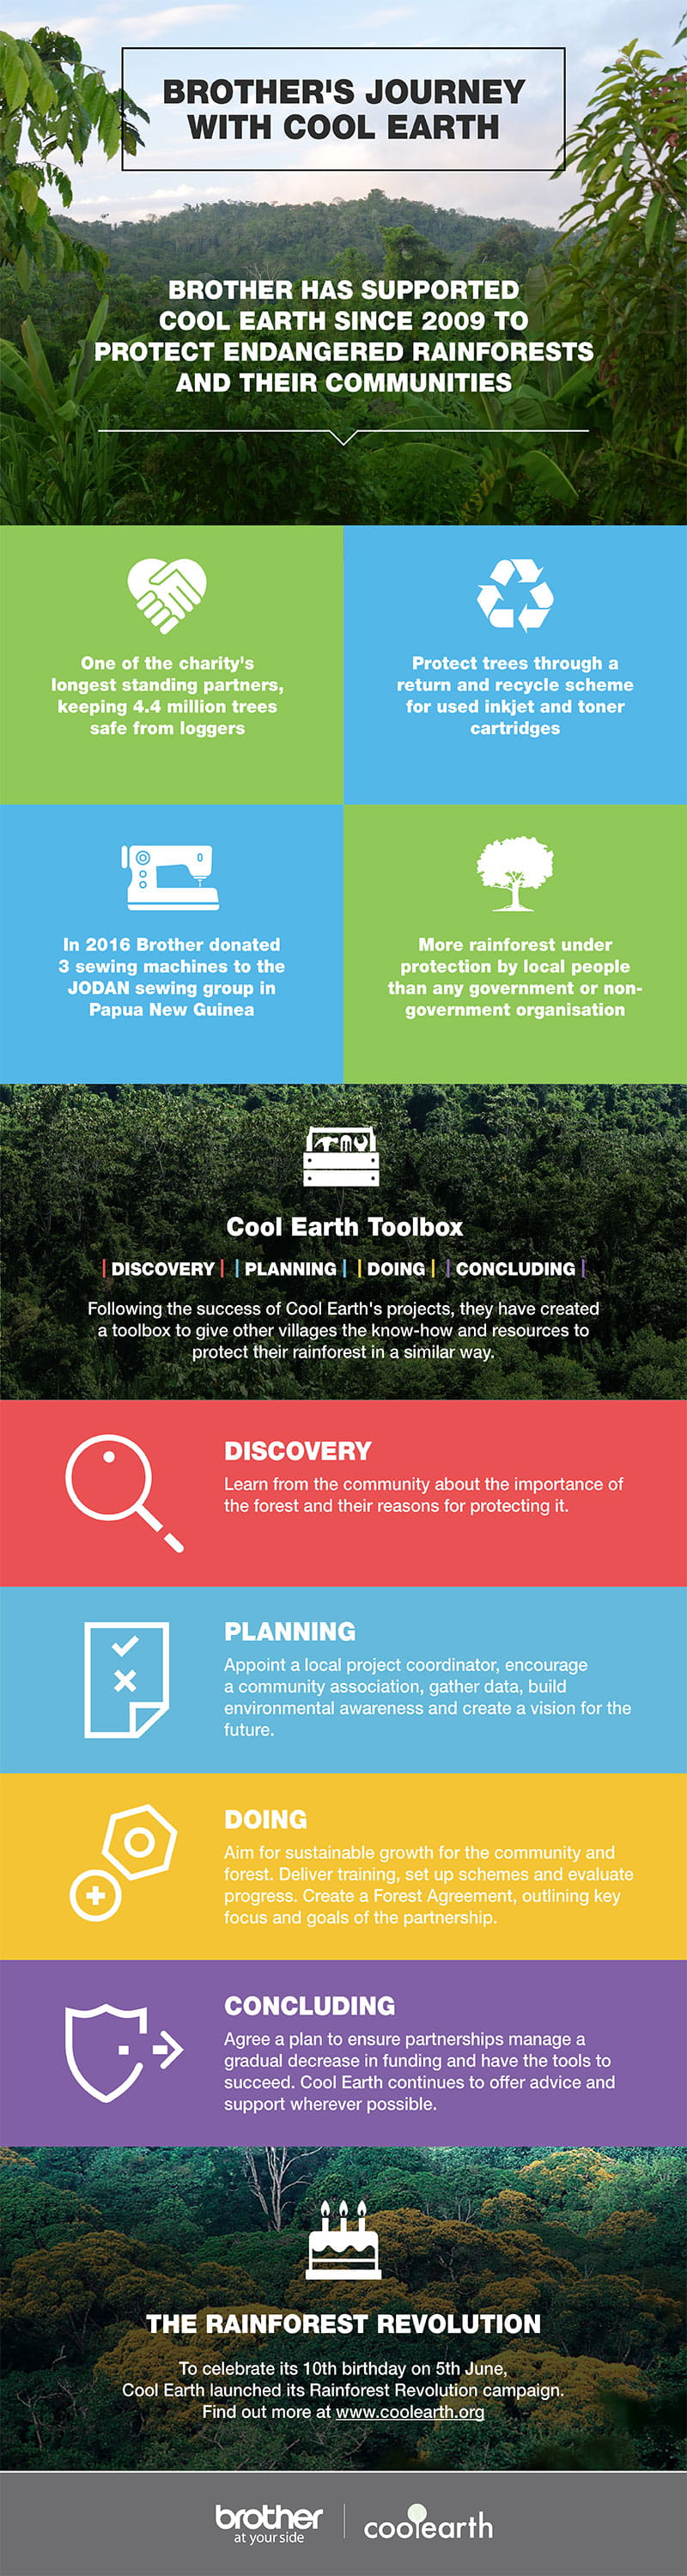 Brother cool earth infographic 2017